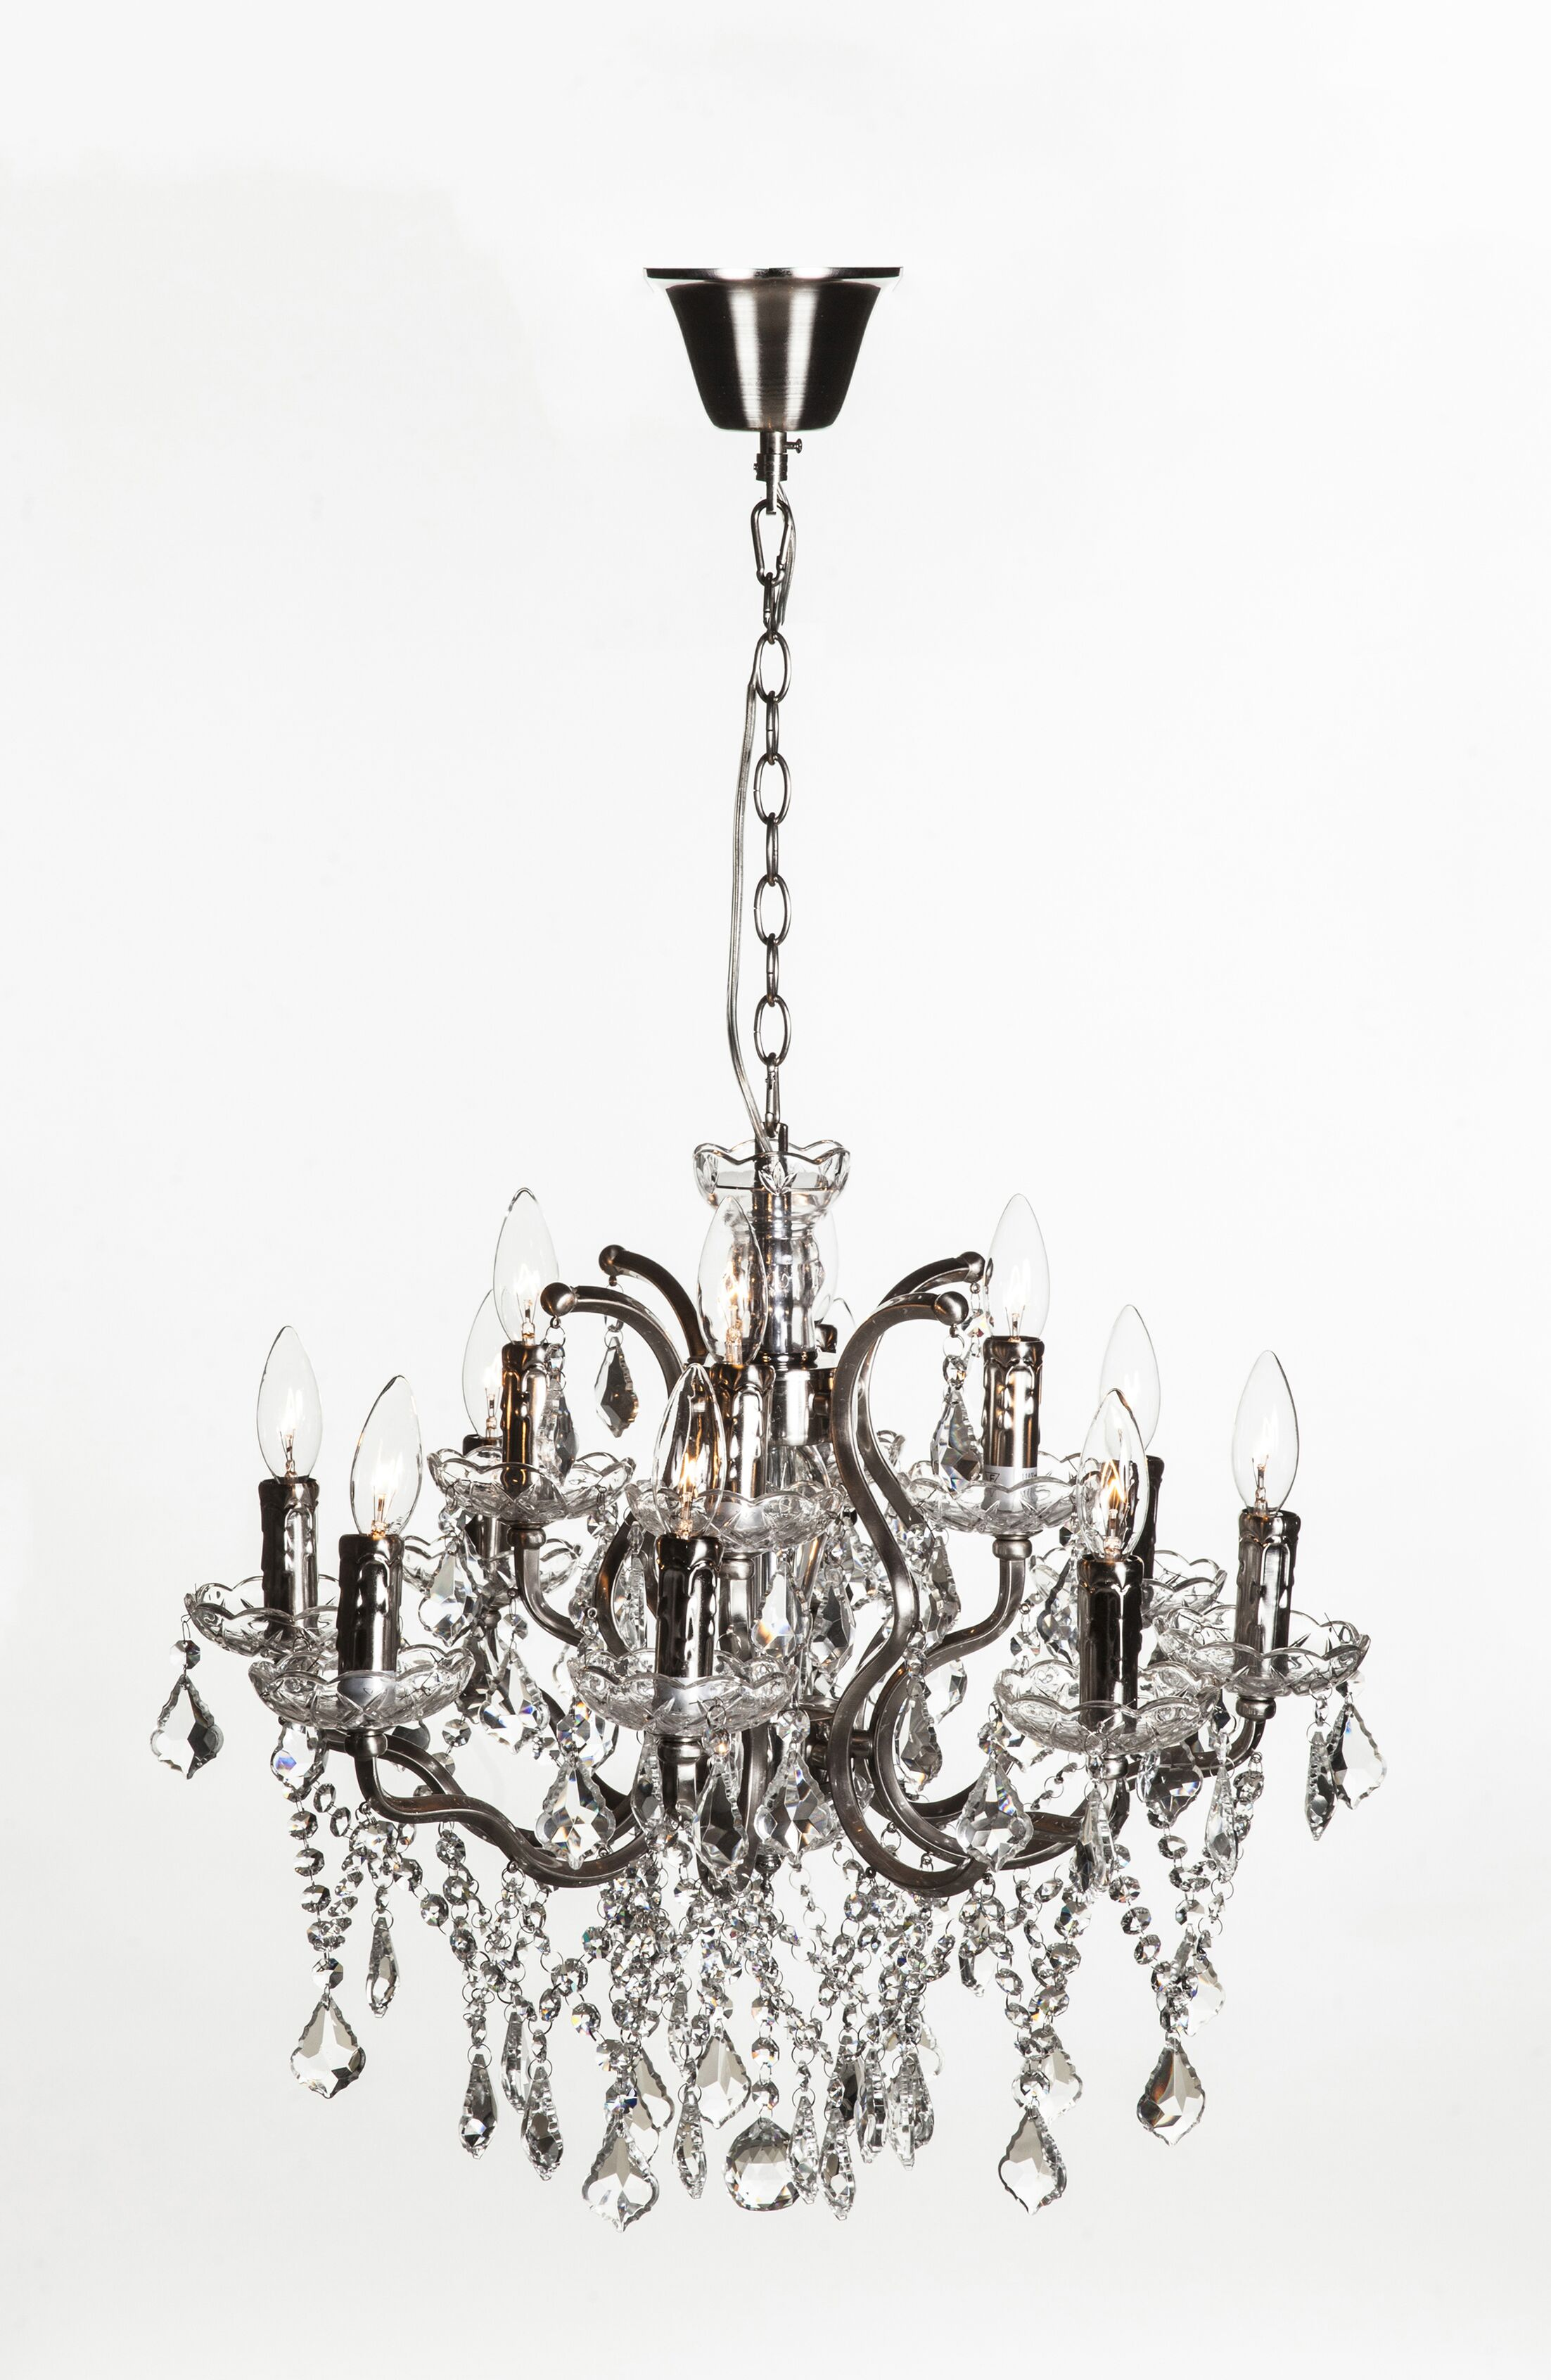 Halcyon 12-Light Candle Style Chandelier